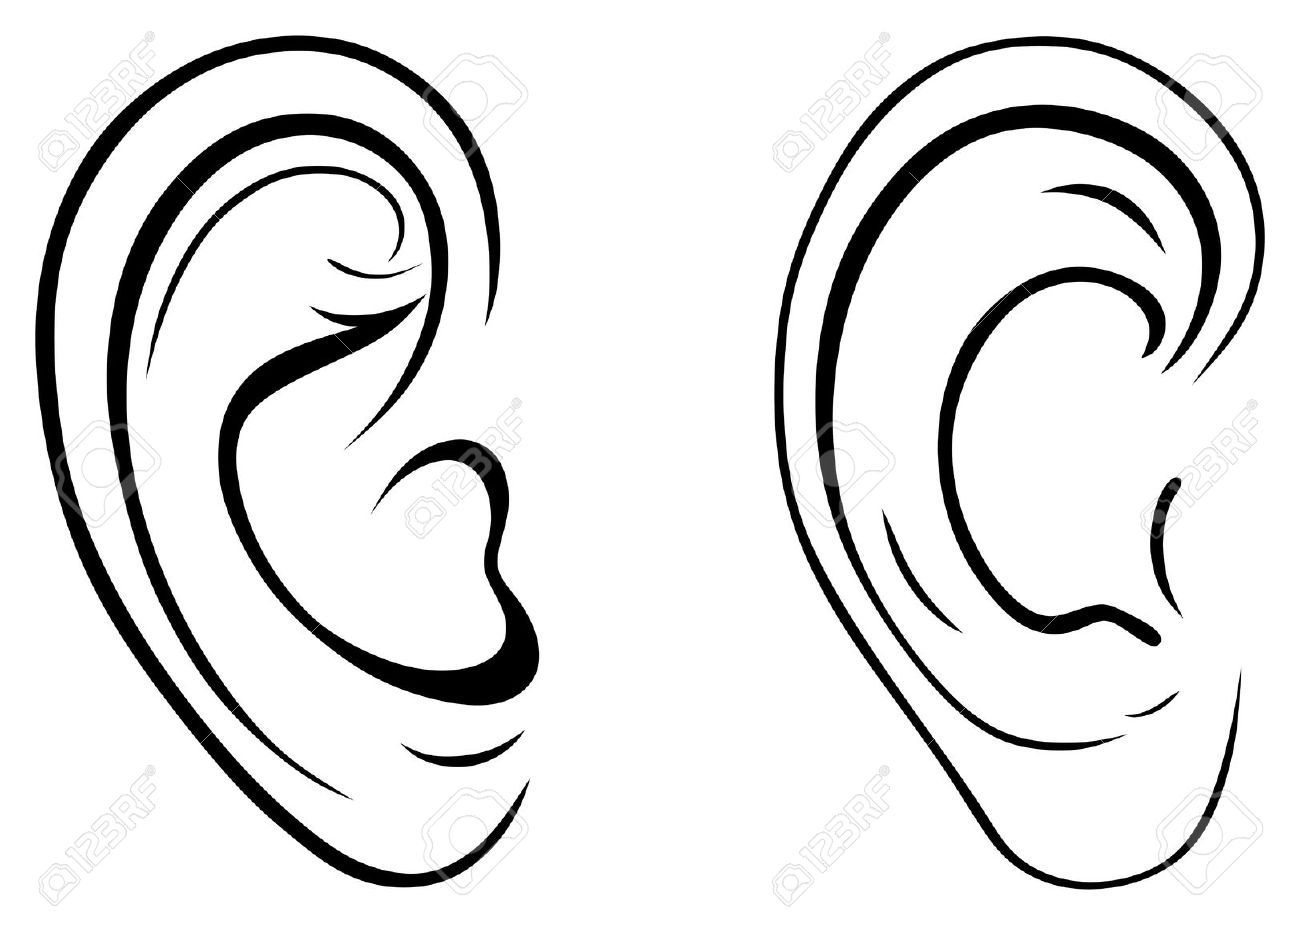 human ears clipart black and white - Google Search | pics ...